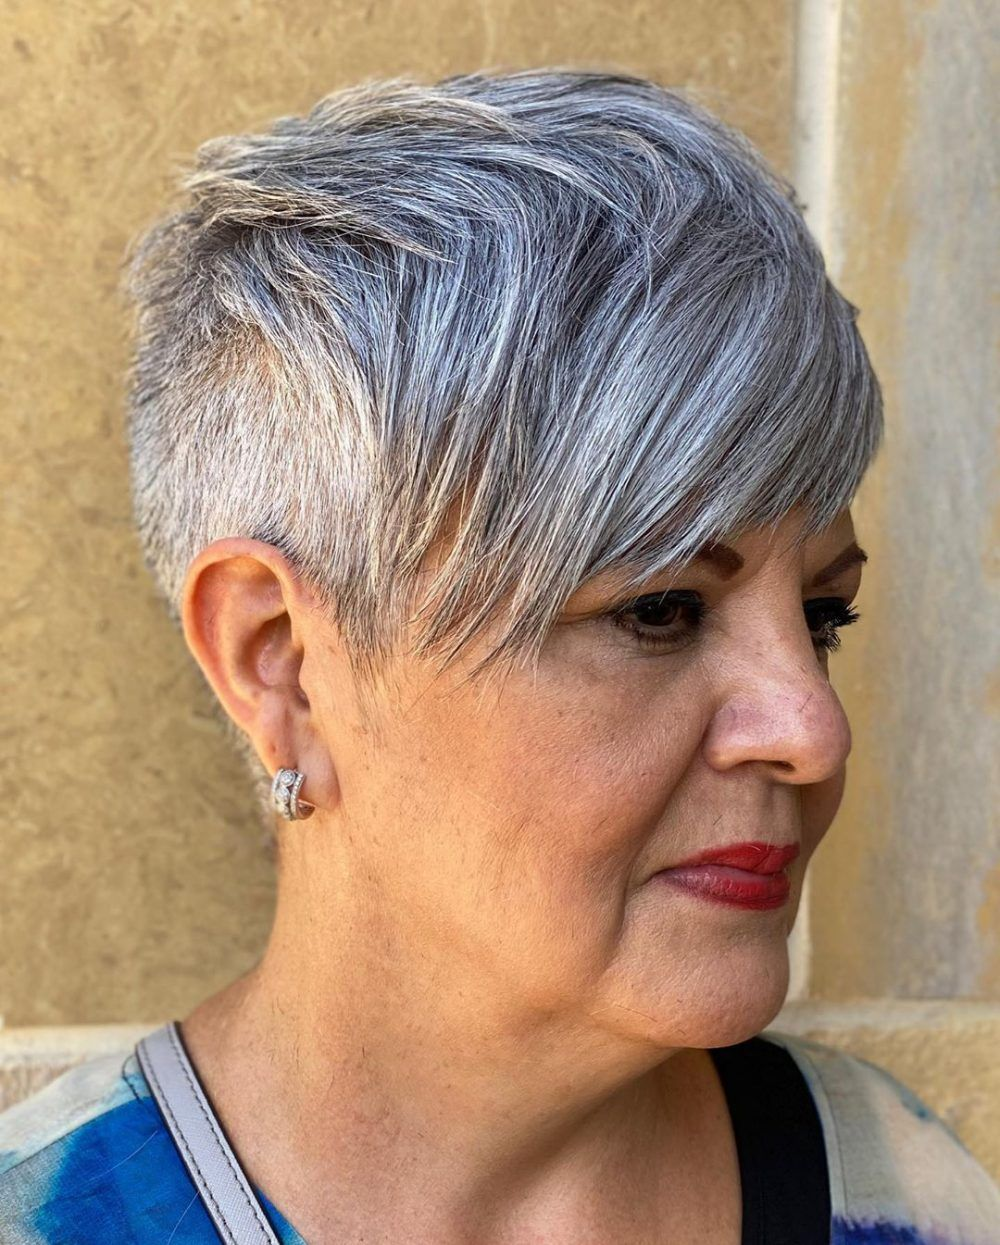 65 Pixie Haircuts for Women Over 60 (Updated 2021) 22442bc60141f466b3485f958bb3f812